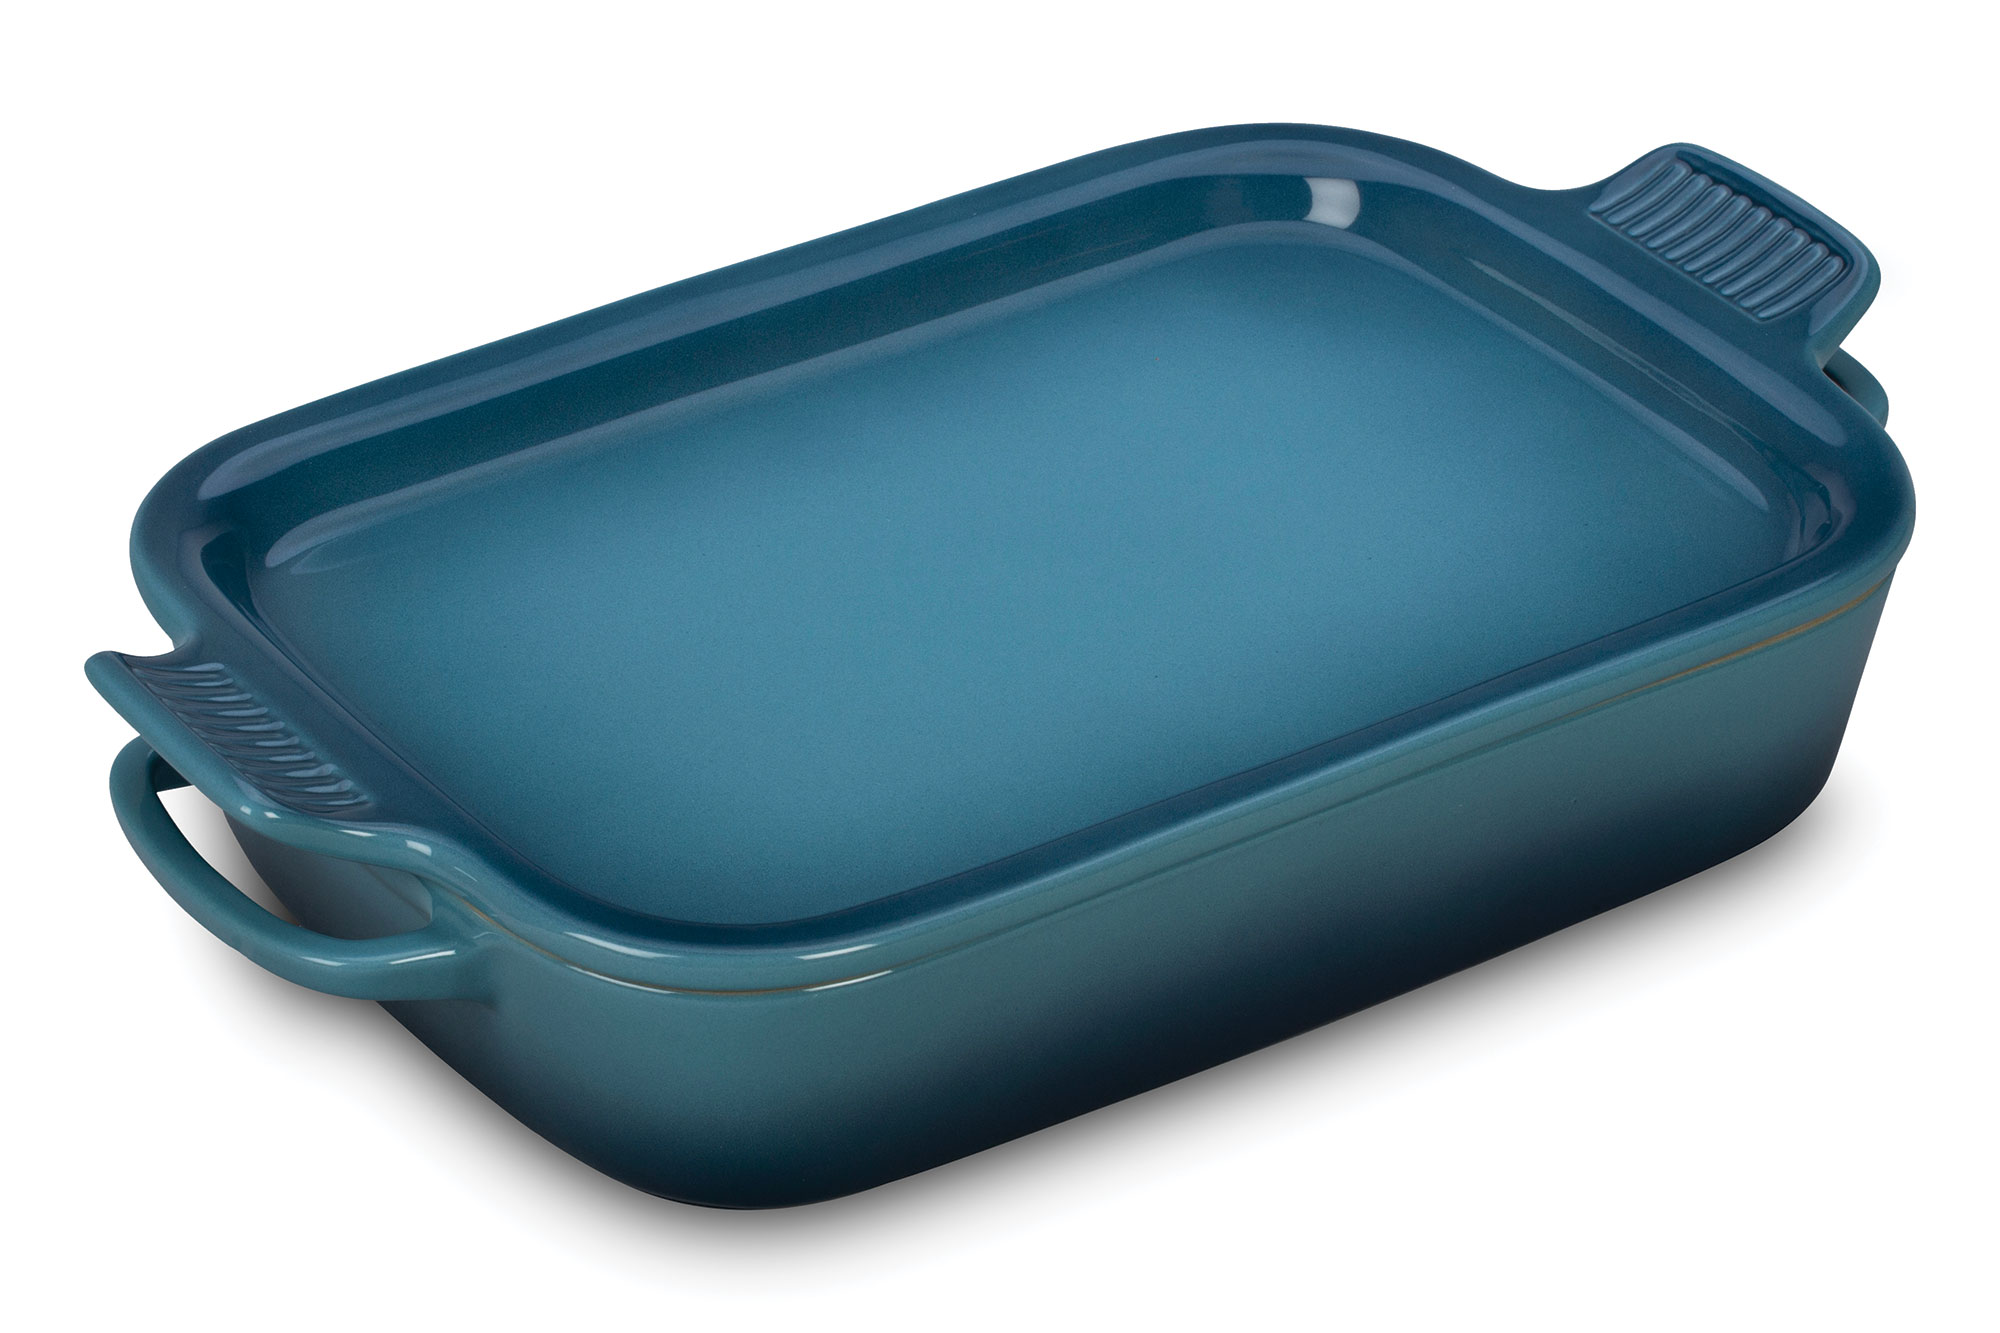 Le Creuset Stoneware Rectangular Baking Dish With Platter